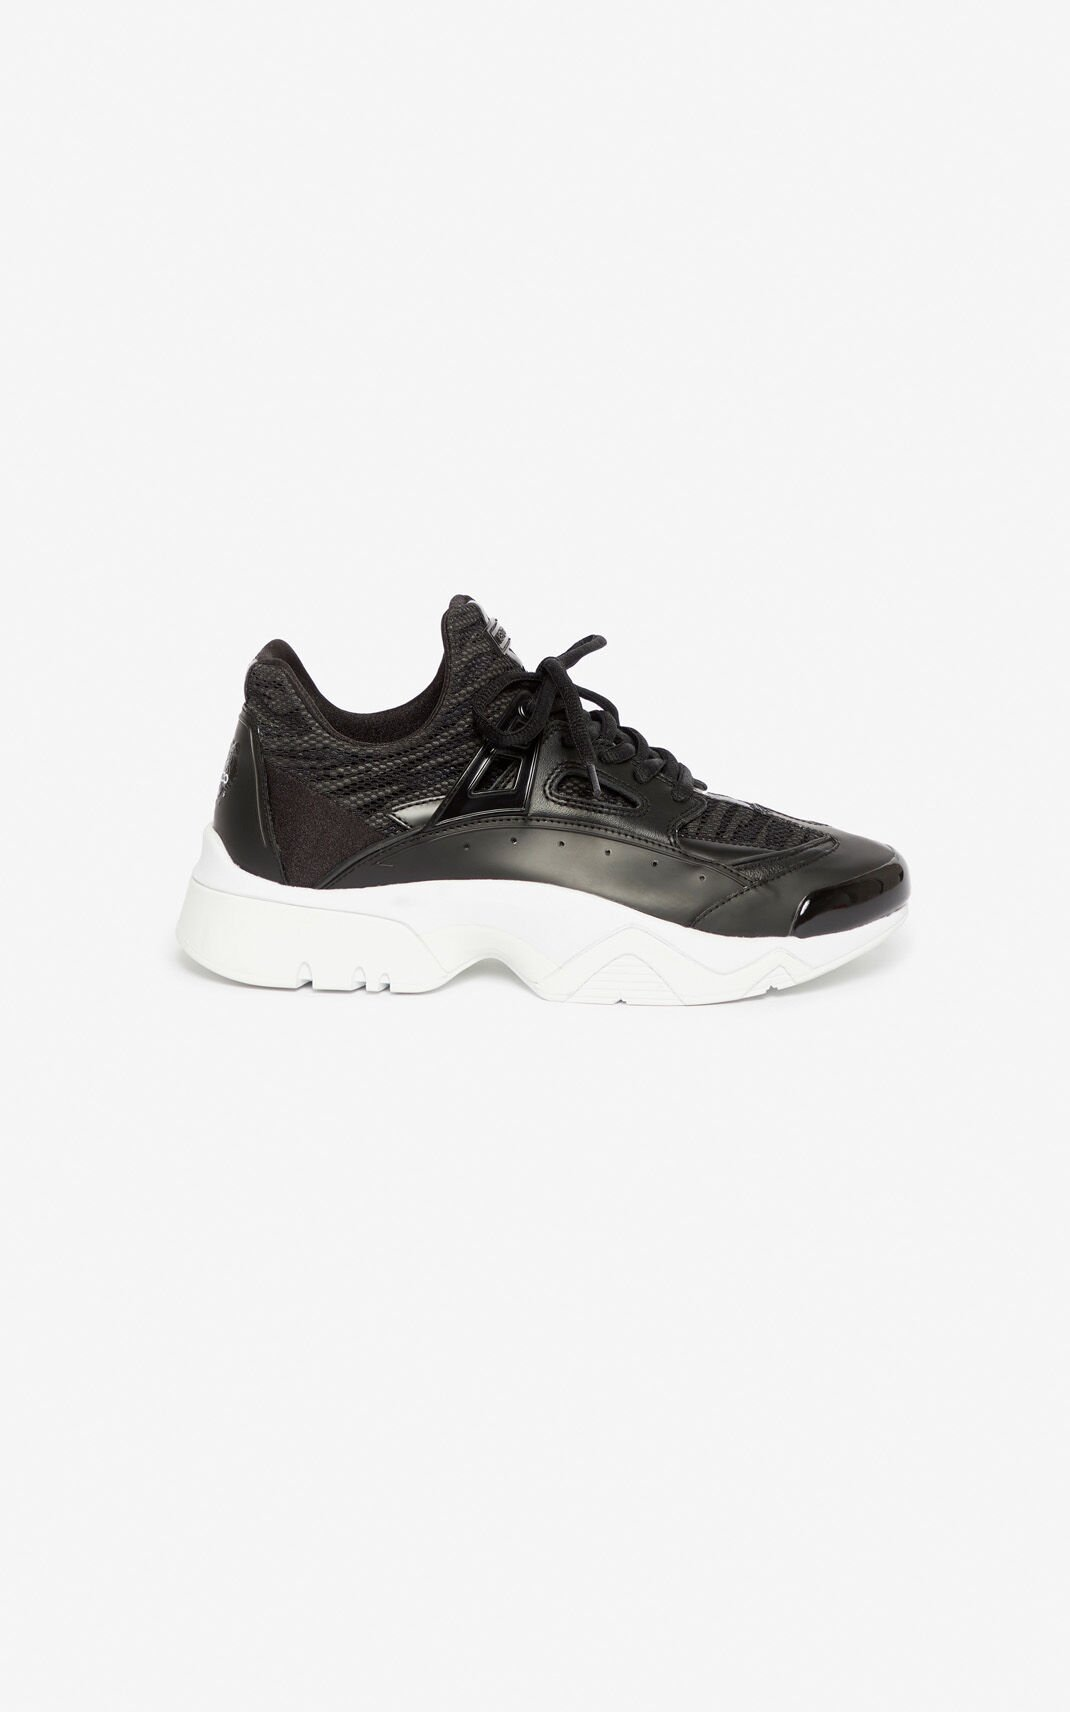 On Chaussures Femme Slip Sneakers Baskets qv8awv4